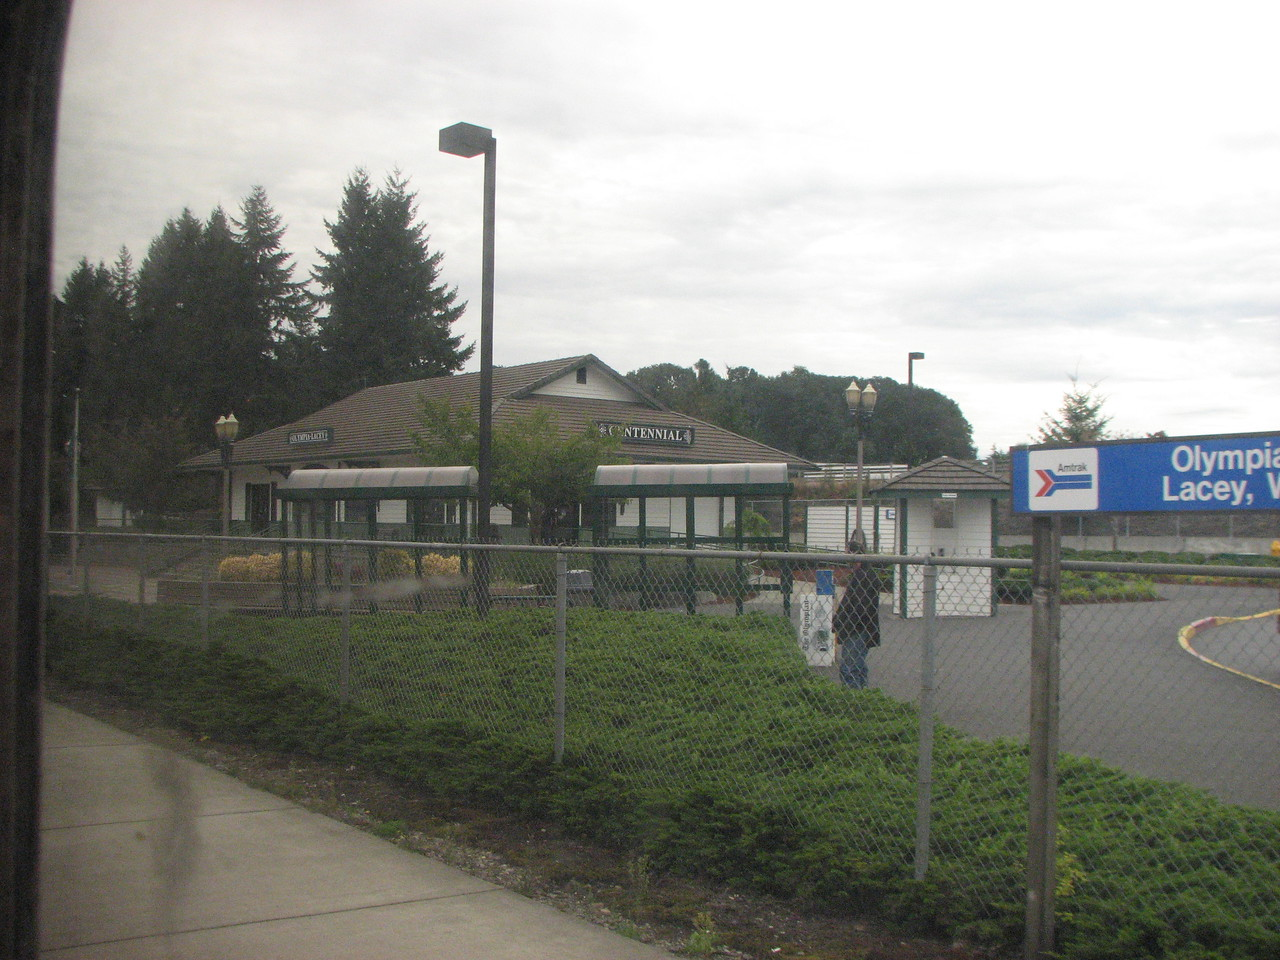 The station at Olympia-Lacey. Thanks to all who contributed to the building and support of this station.